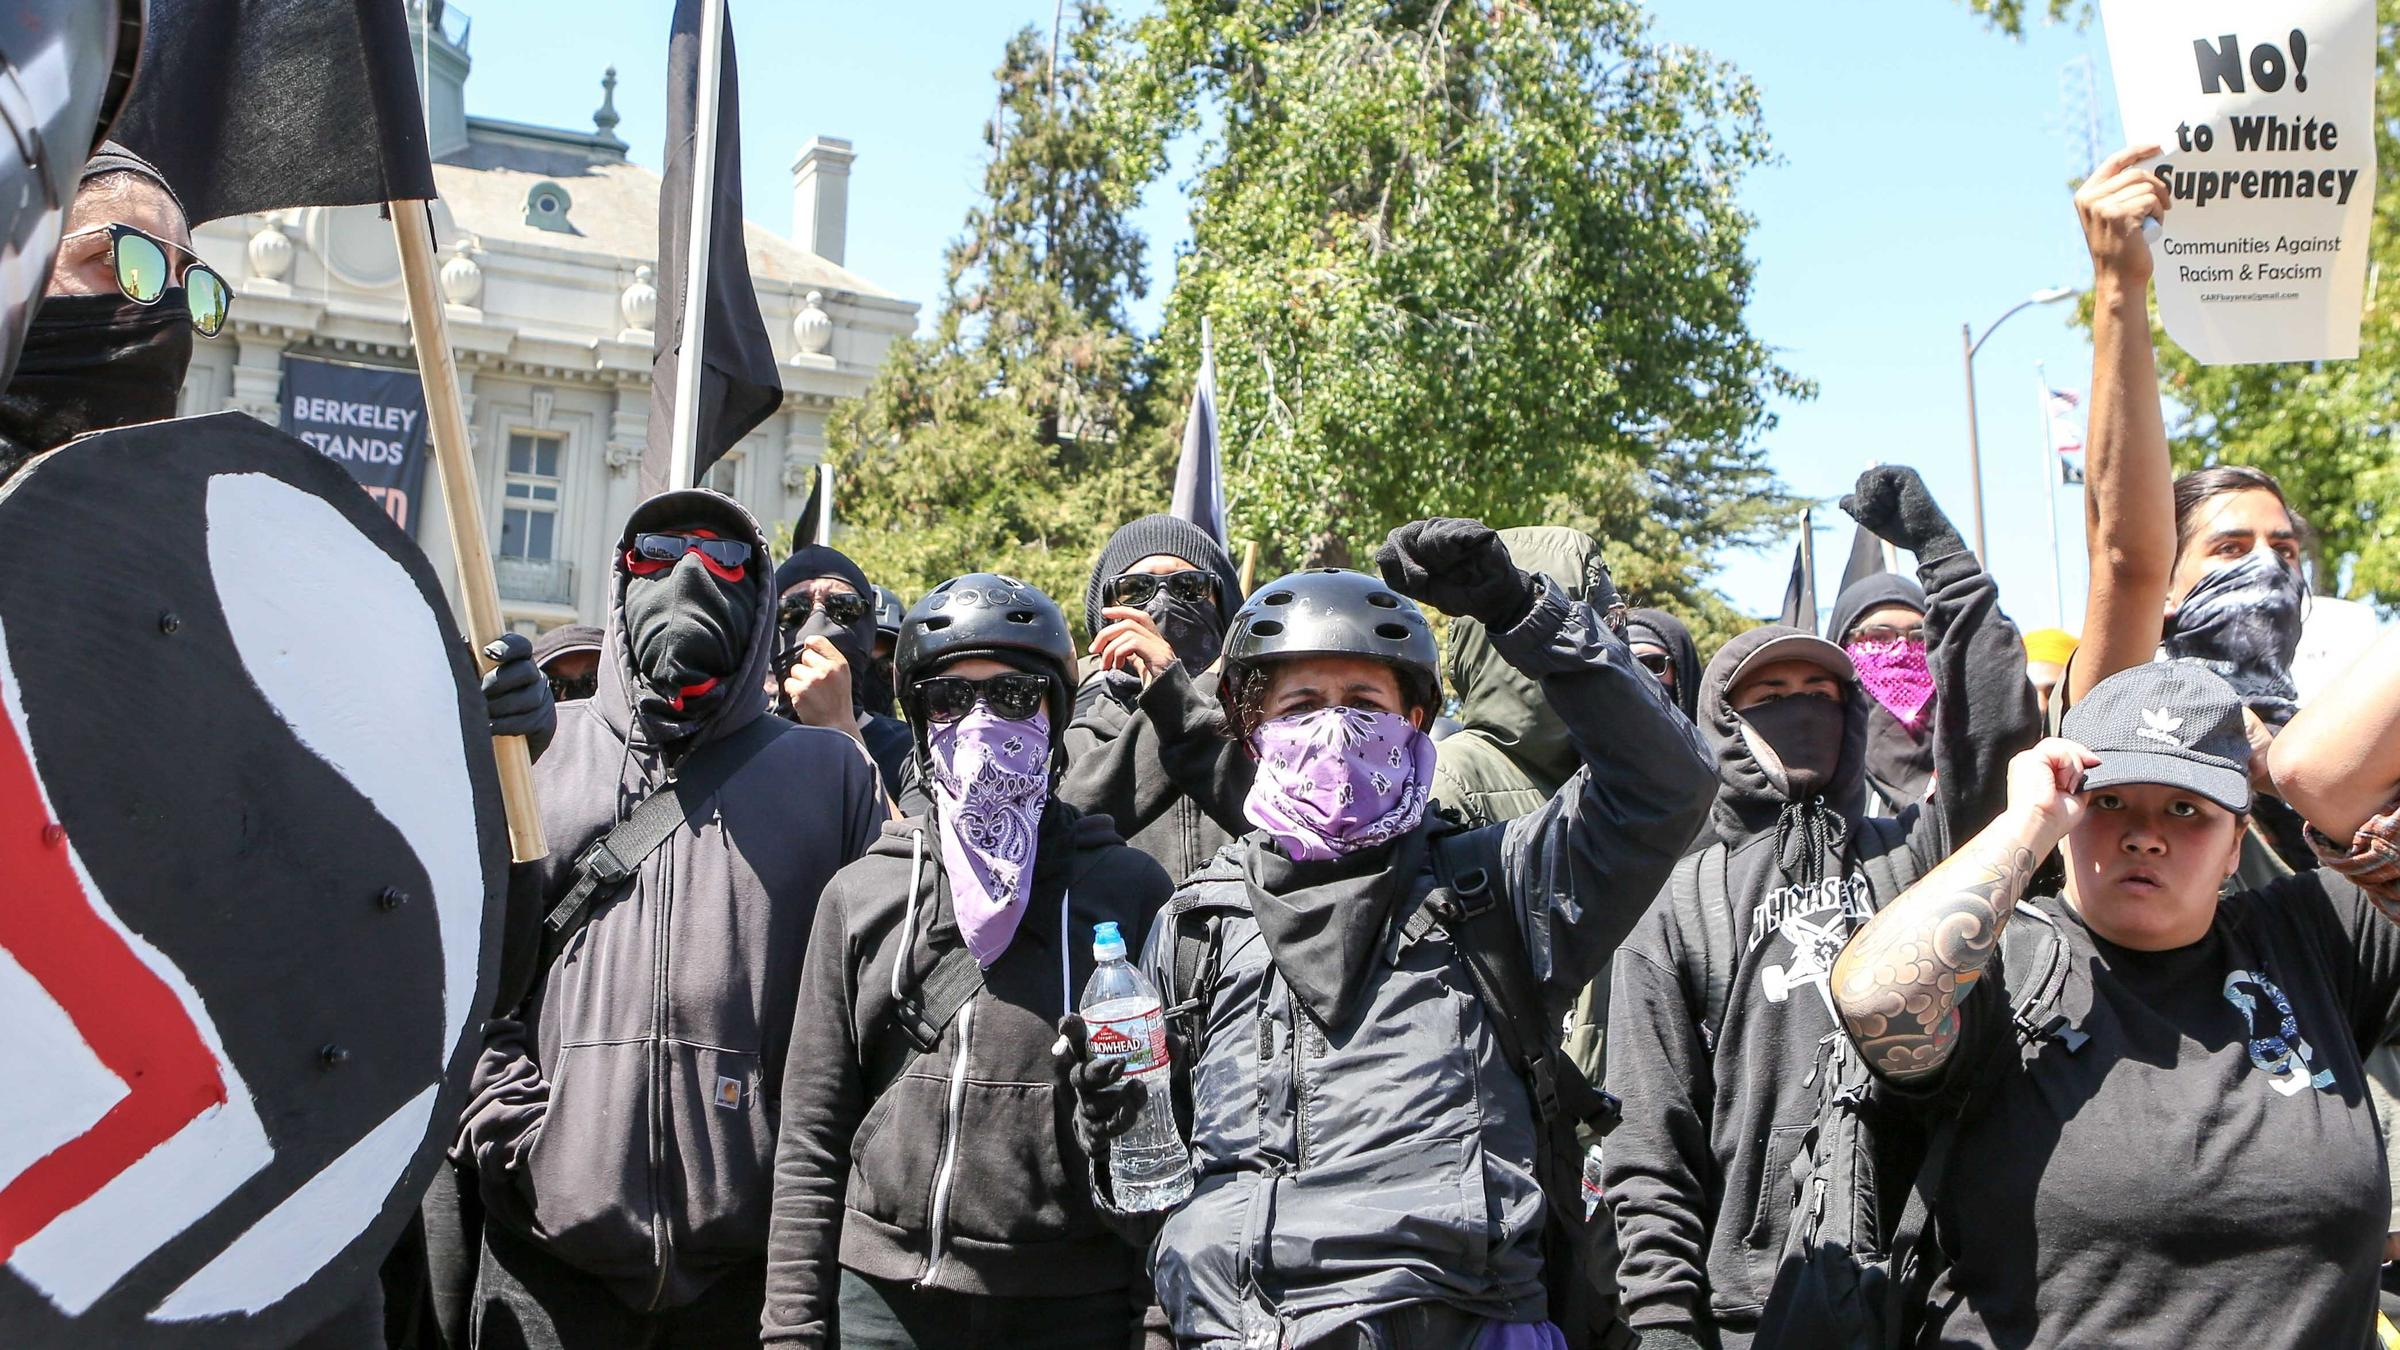 Protesters Clash in Berkeley - Arrests Made